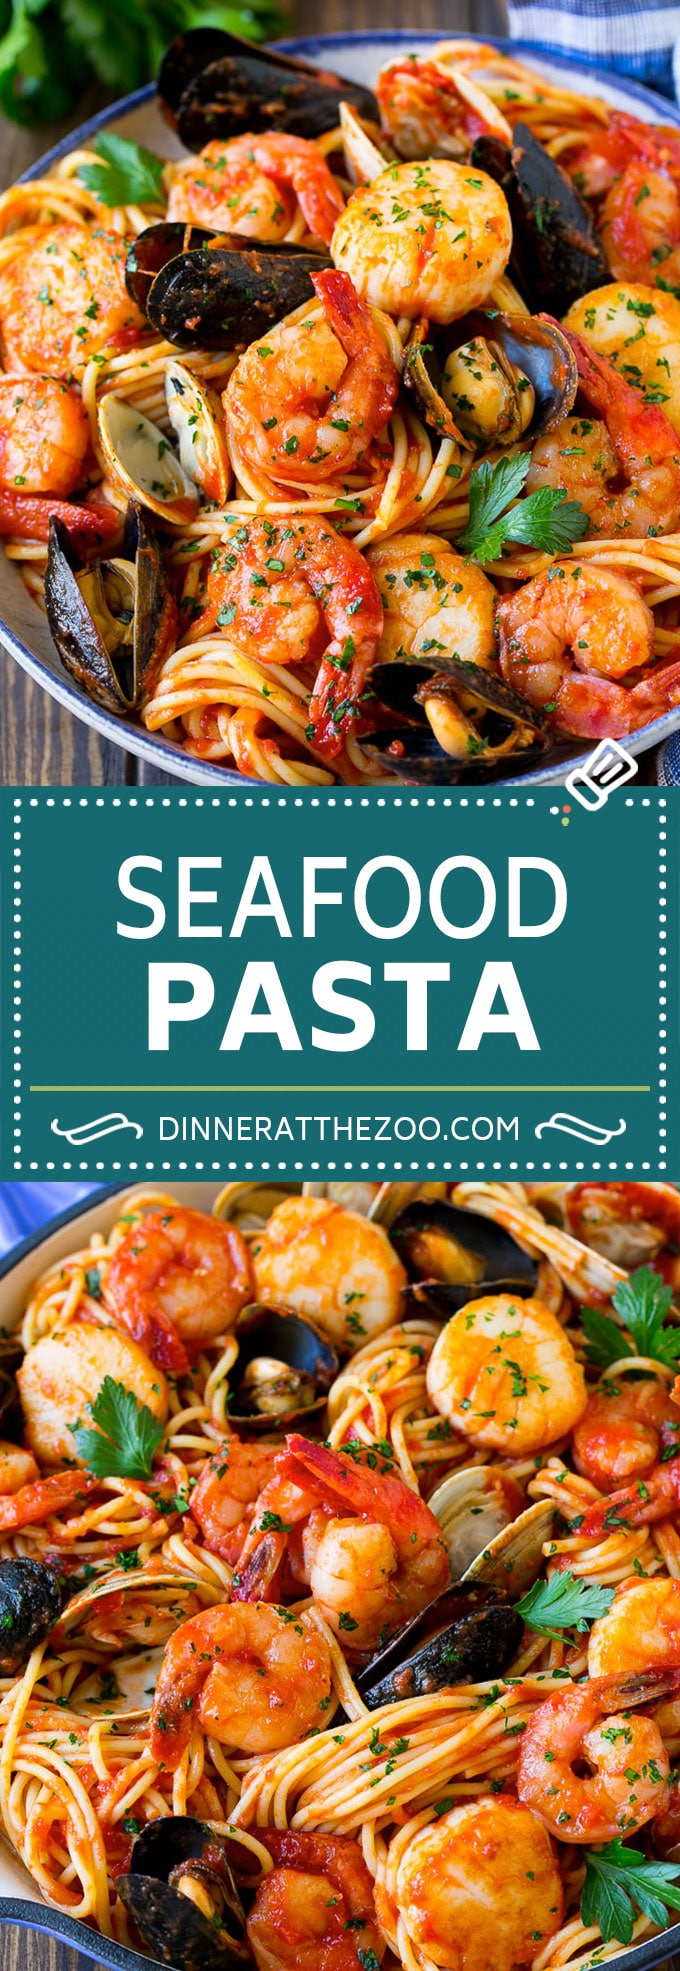 Seafood Pasta Recipe - Dinner at the Zoo